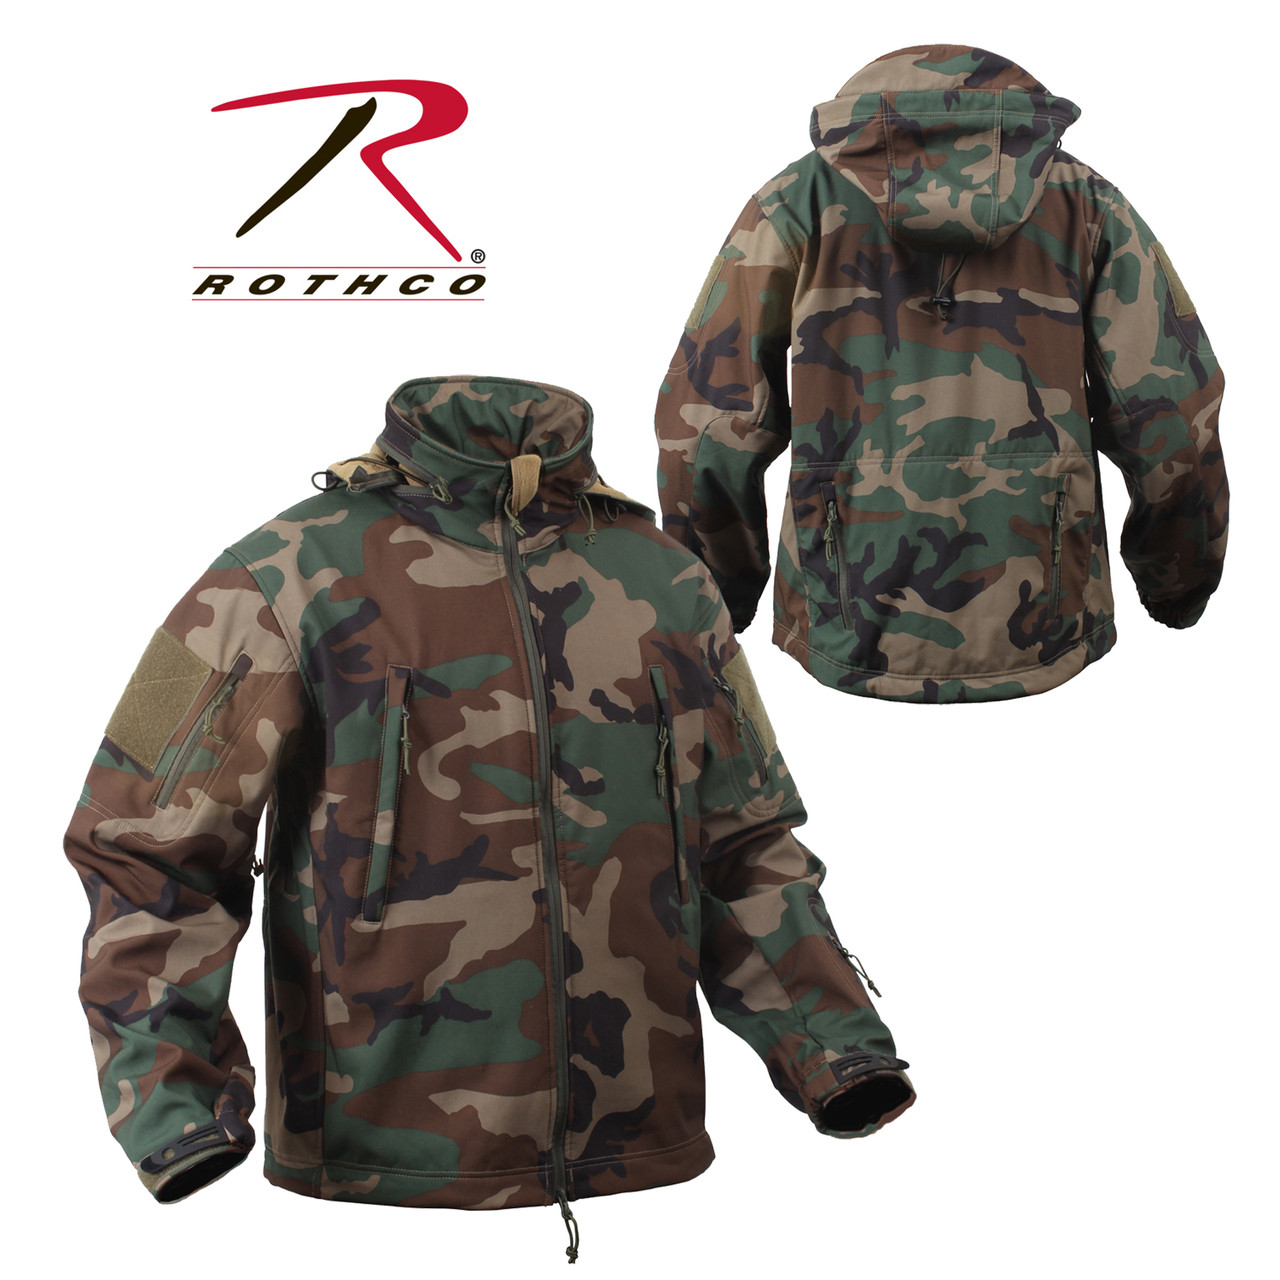 617069cc5 Rothco Special OPS Tactical Soft Shell Jacket - Woodland Camo